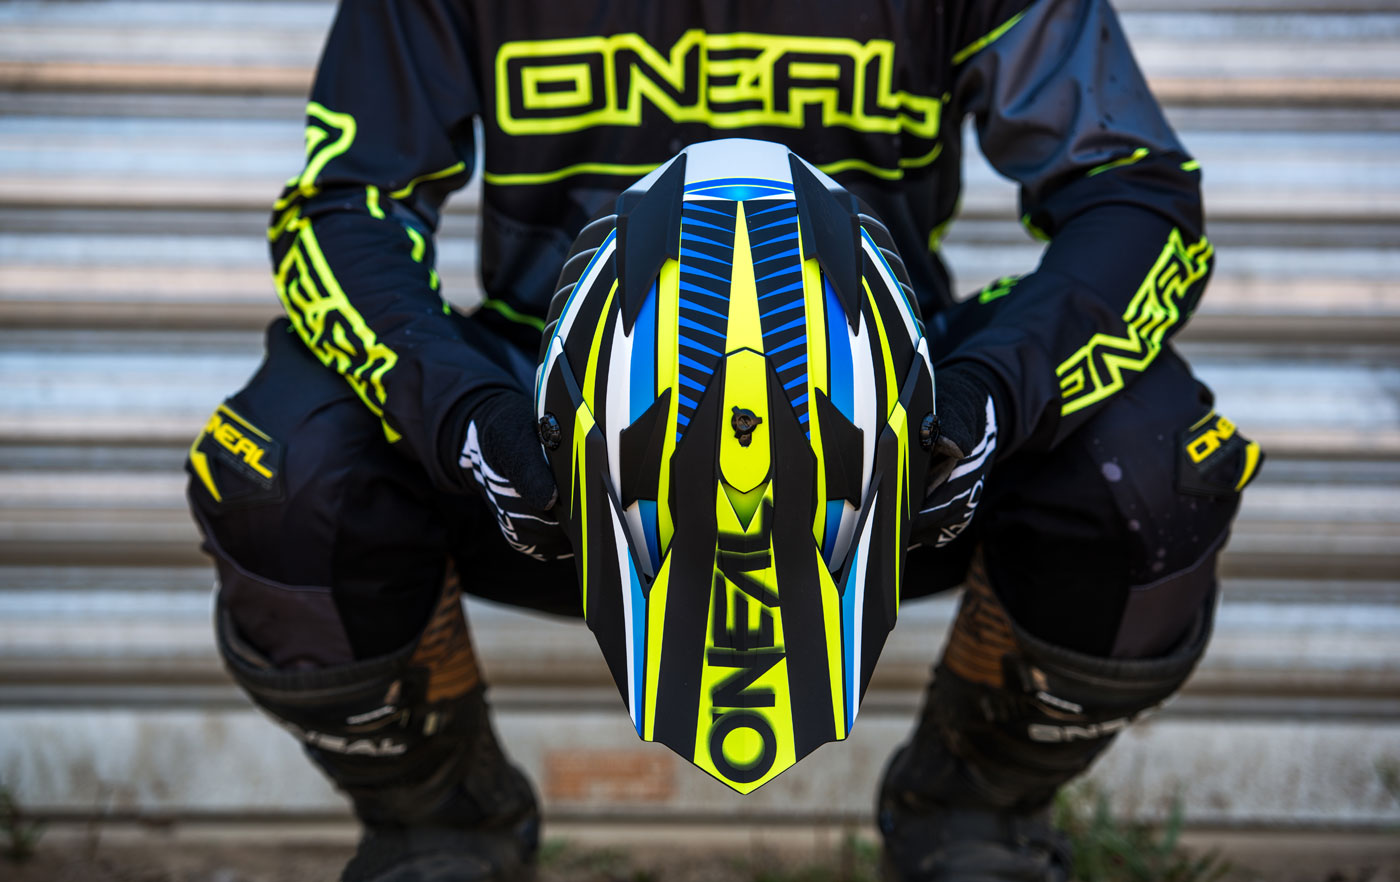 oneal-element-racewear-7series-chaser-2017